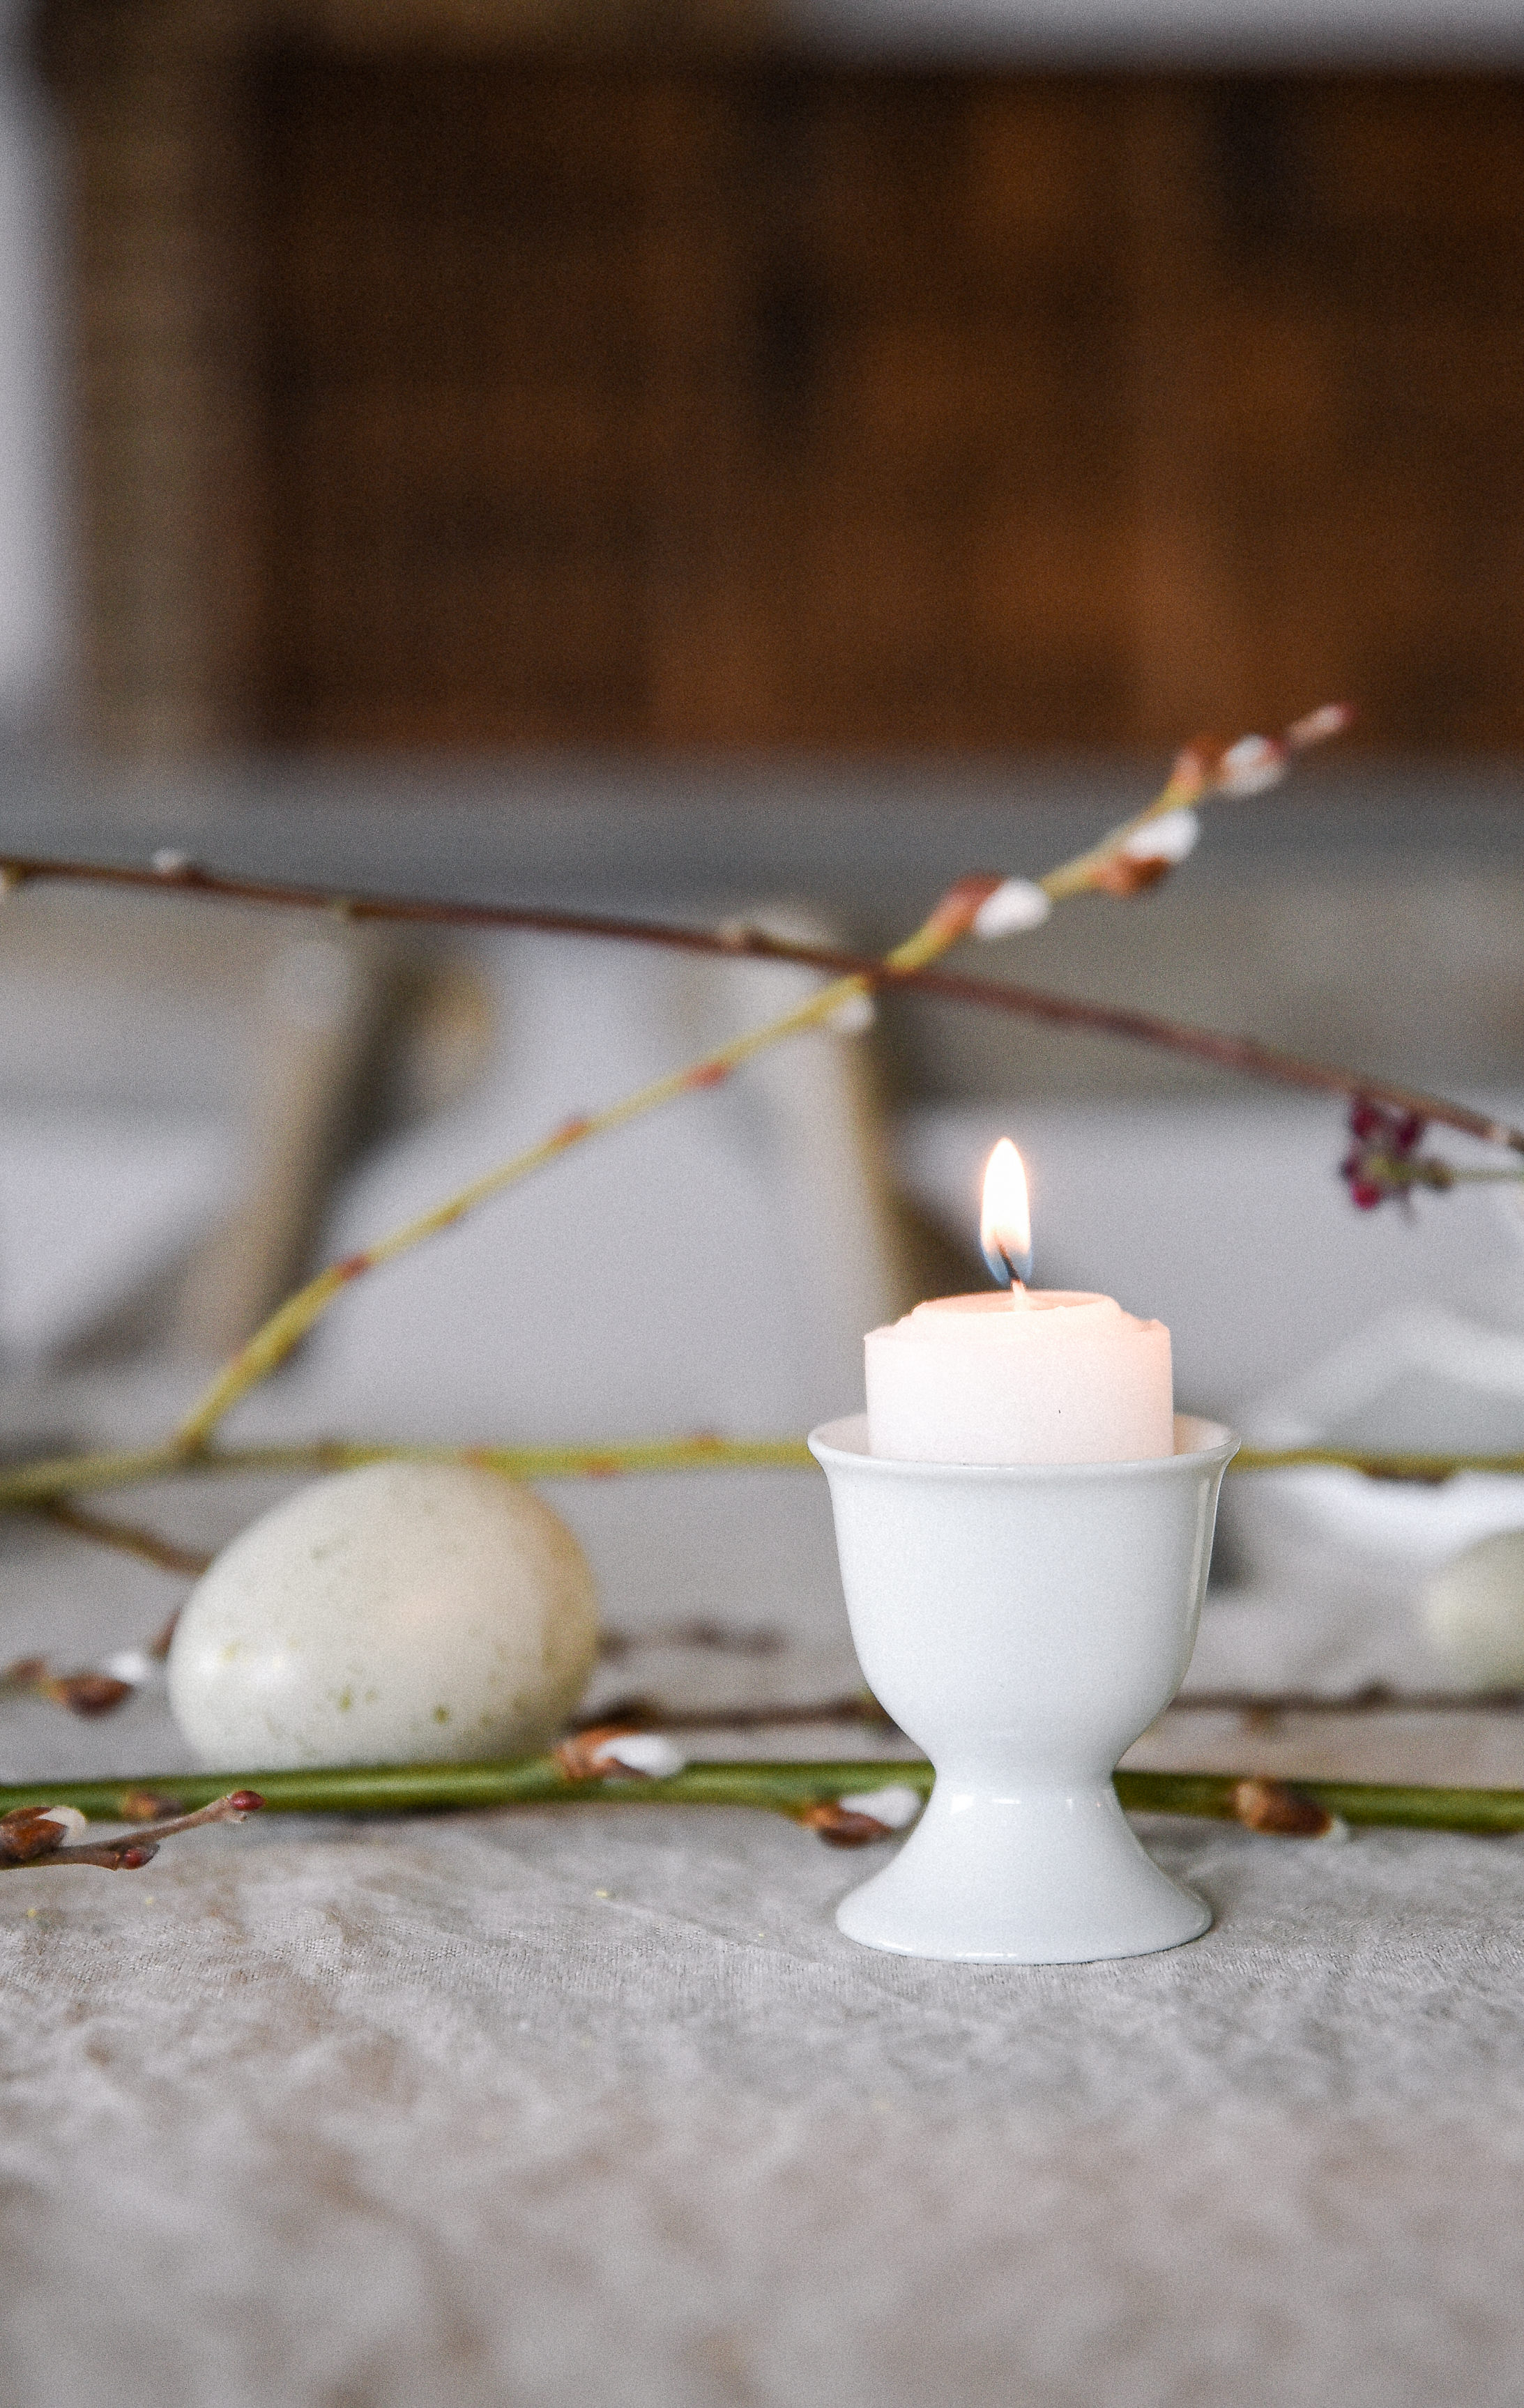 Easter table decorating ideas with using an egg cup as a candle holder | boxwoodavenue.com #easterdecor #eastertable #eastertablescape